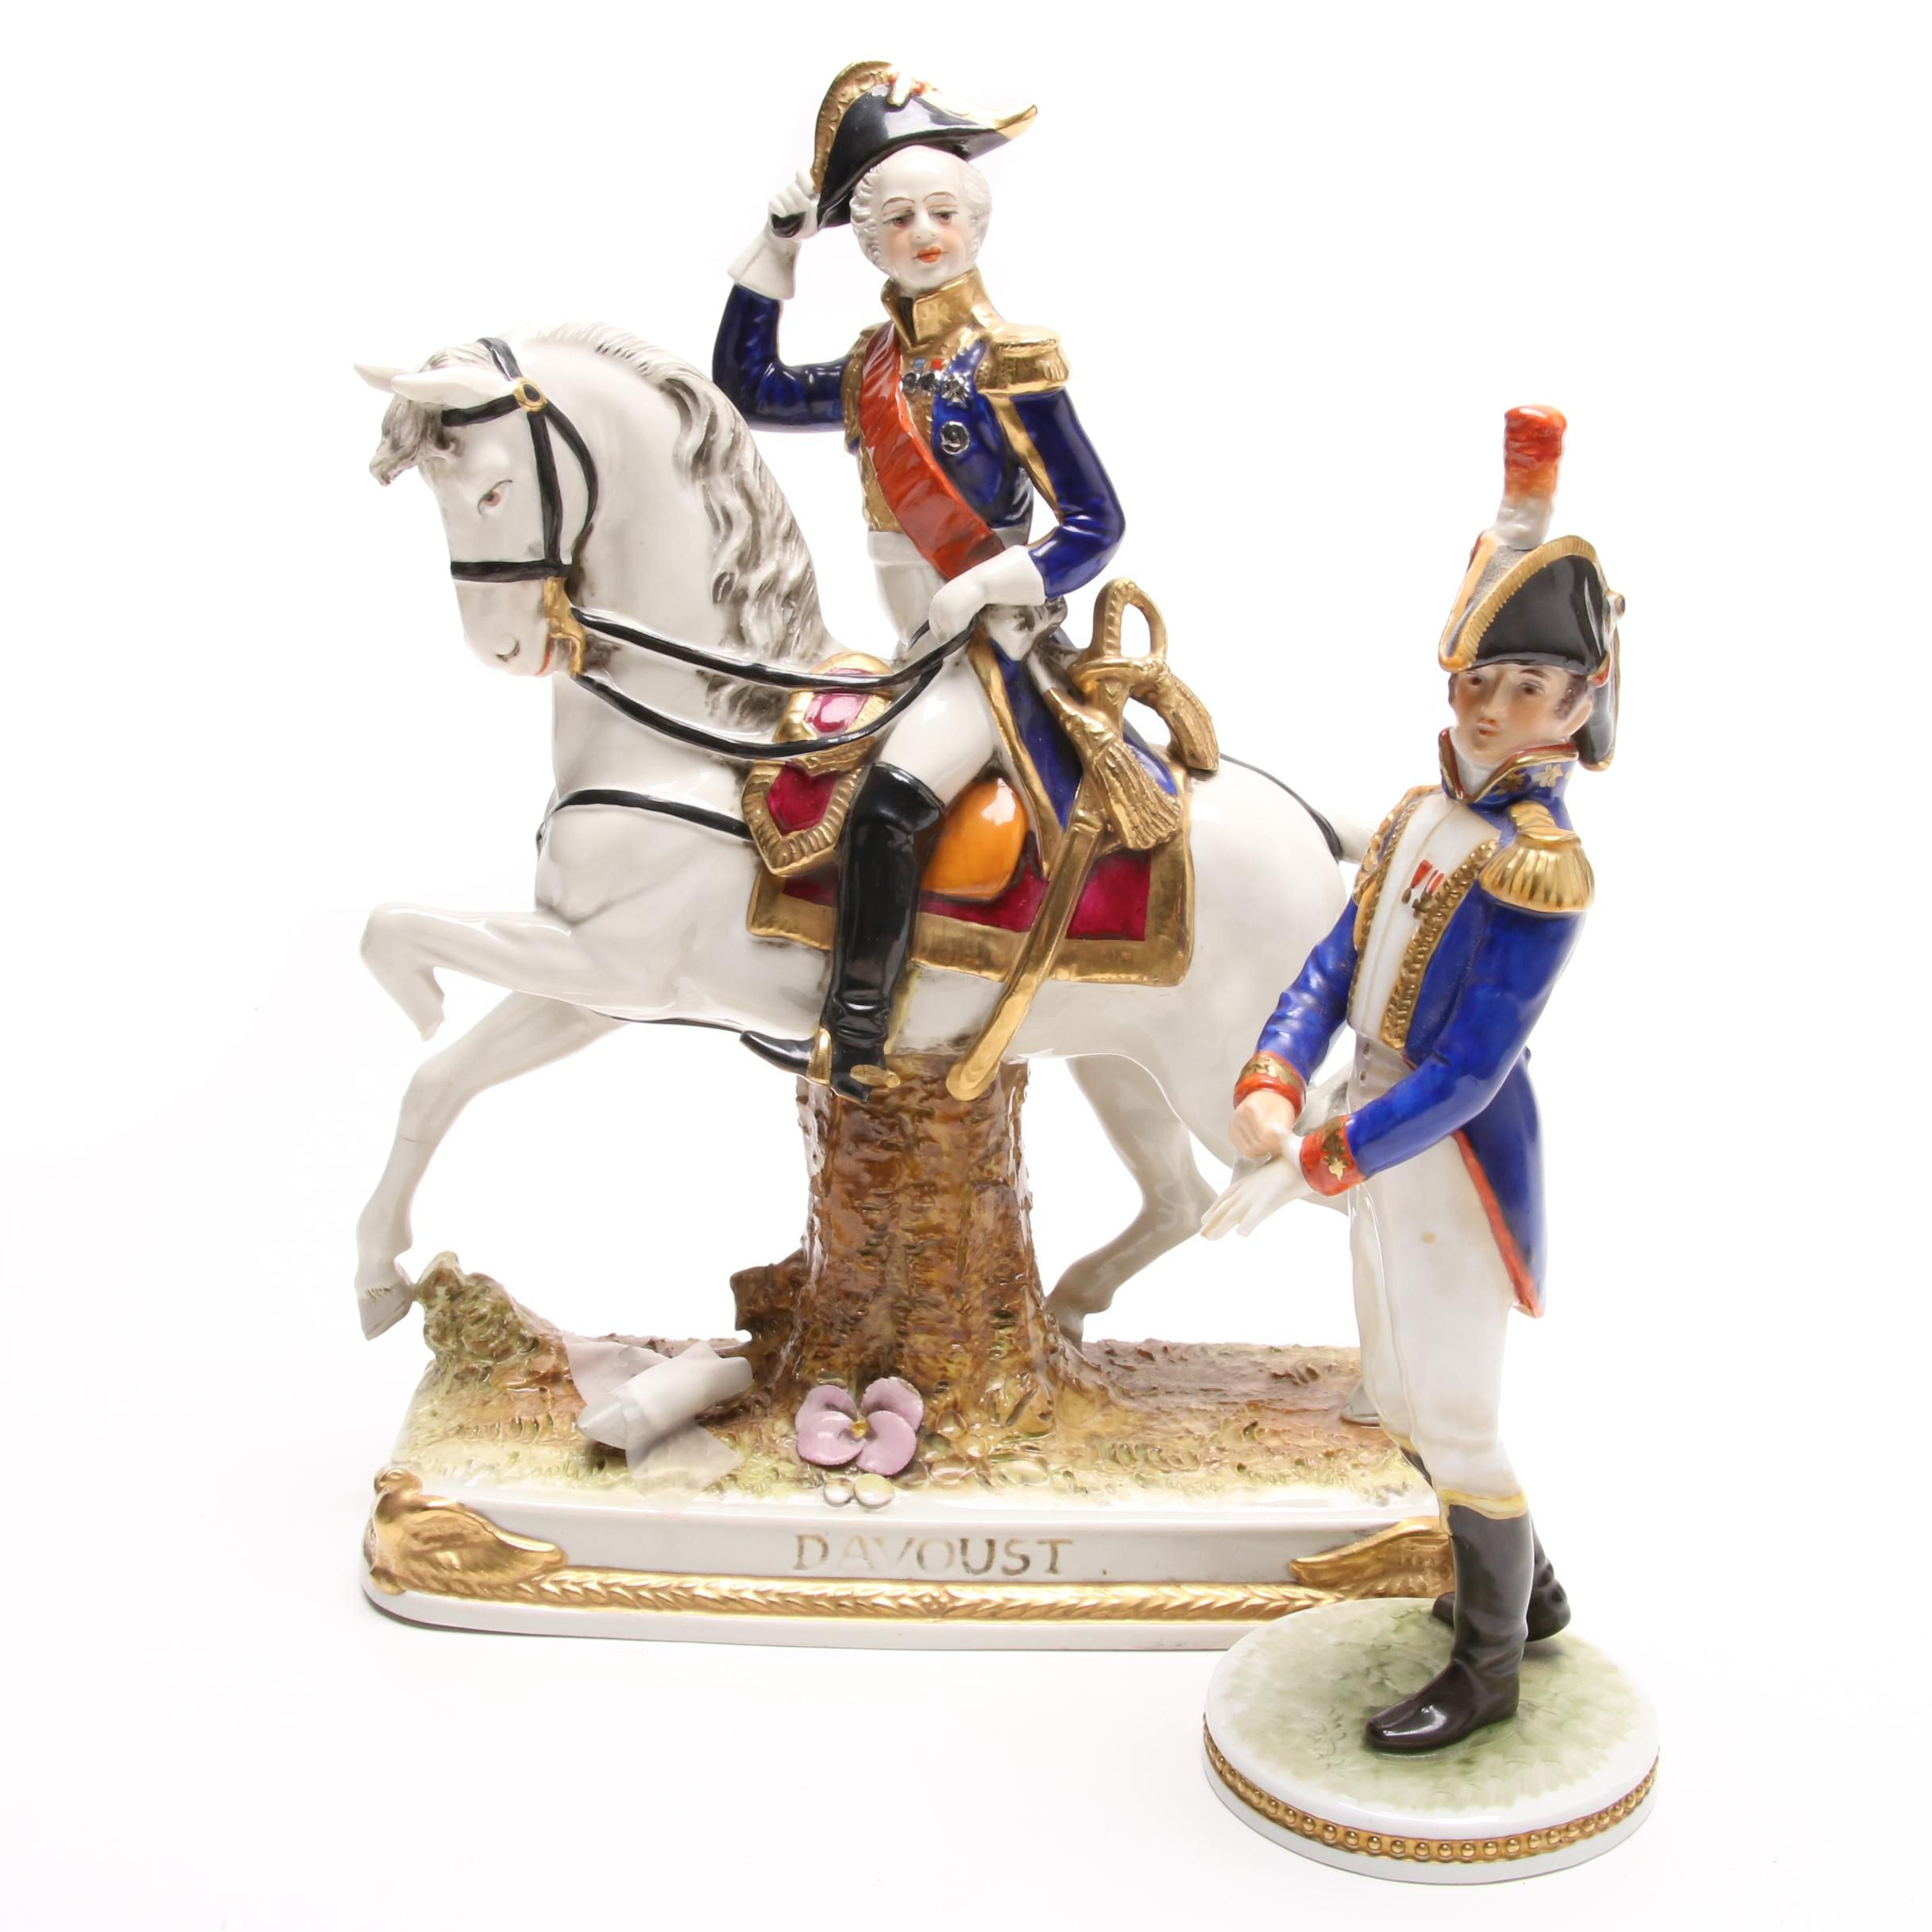 Scheibe-Alsbach Davoust and Alka Kunst Porcelain Napoleon Figurines